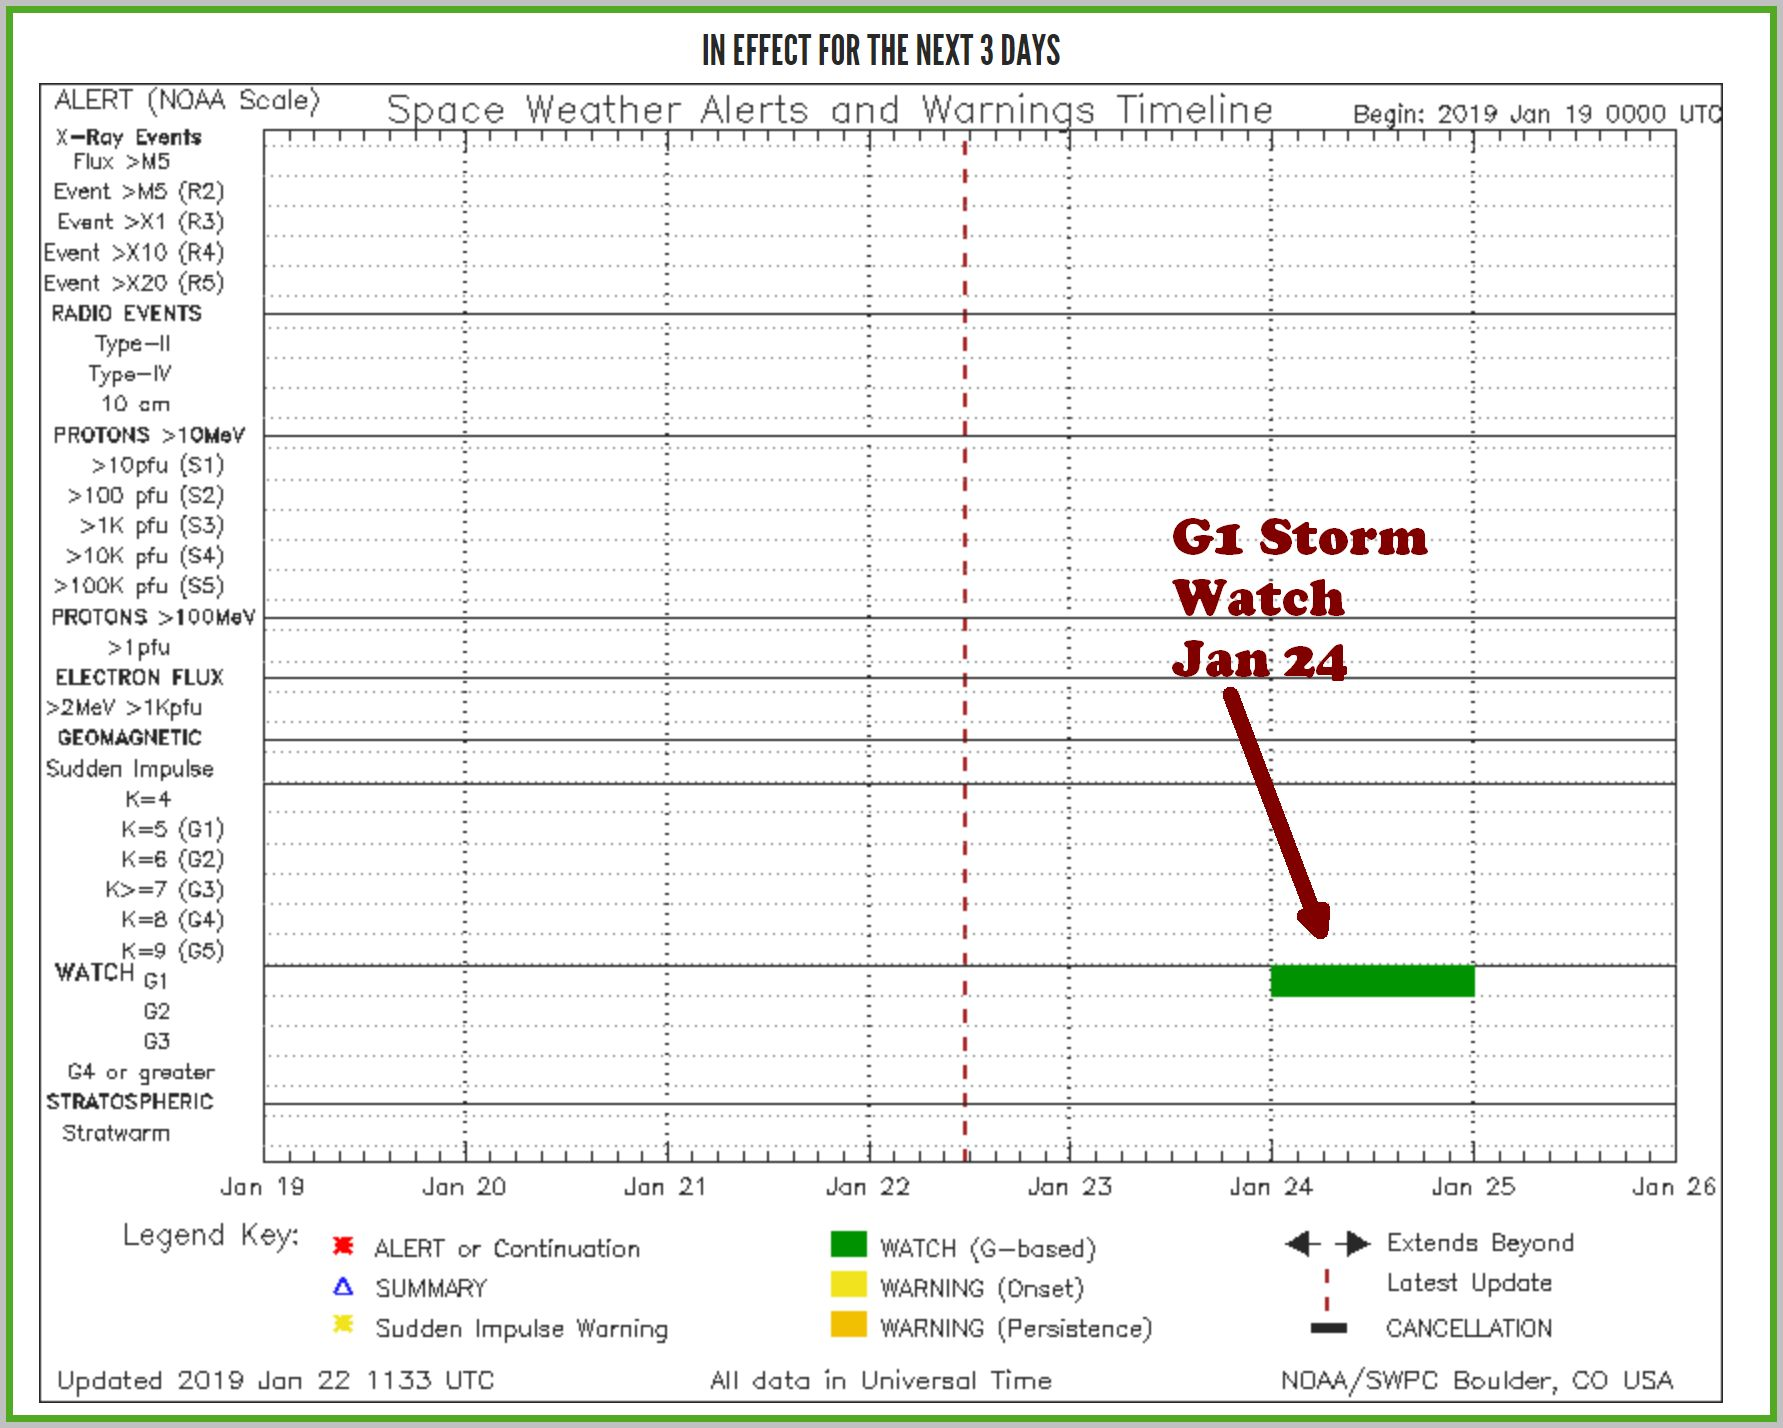 SWPC notification timeline showing storm watch